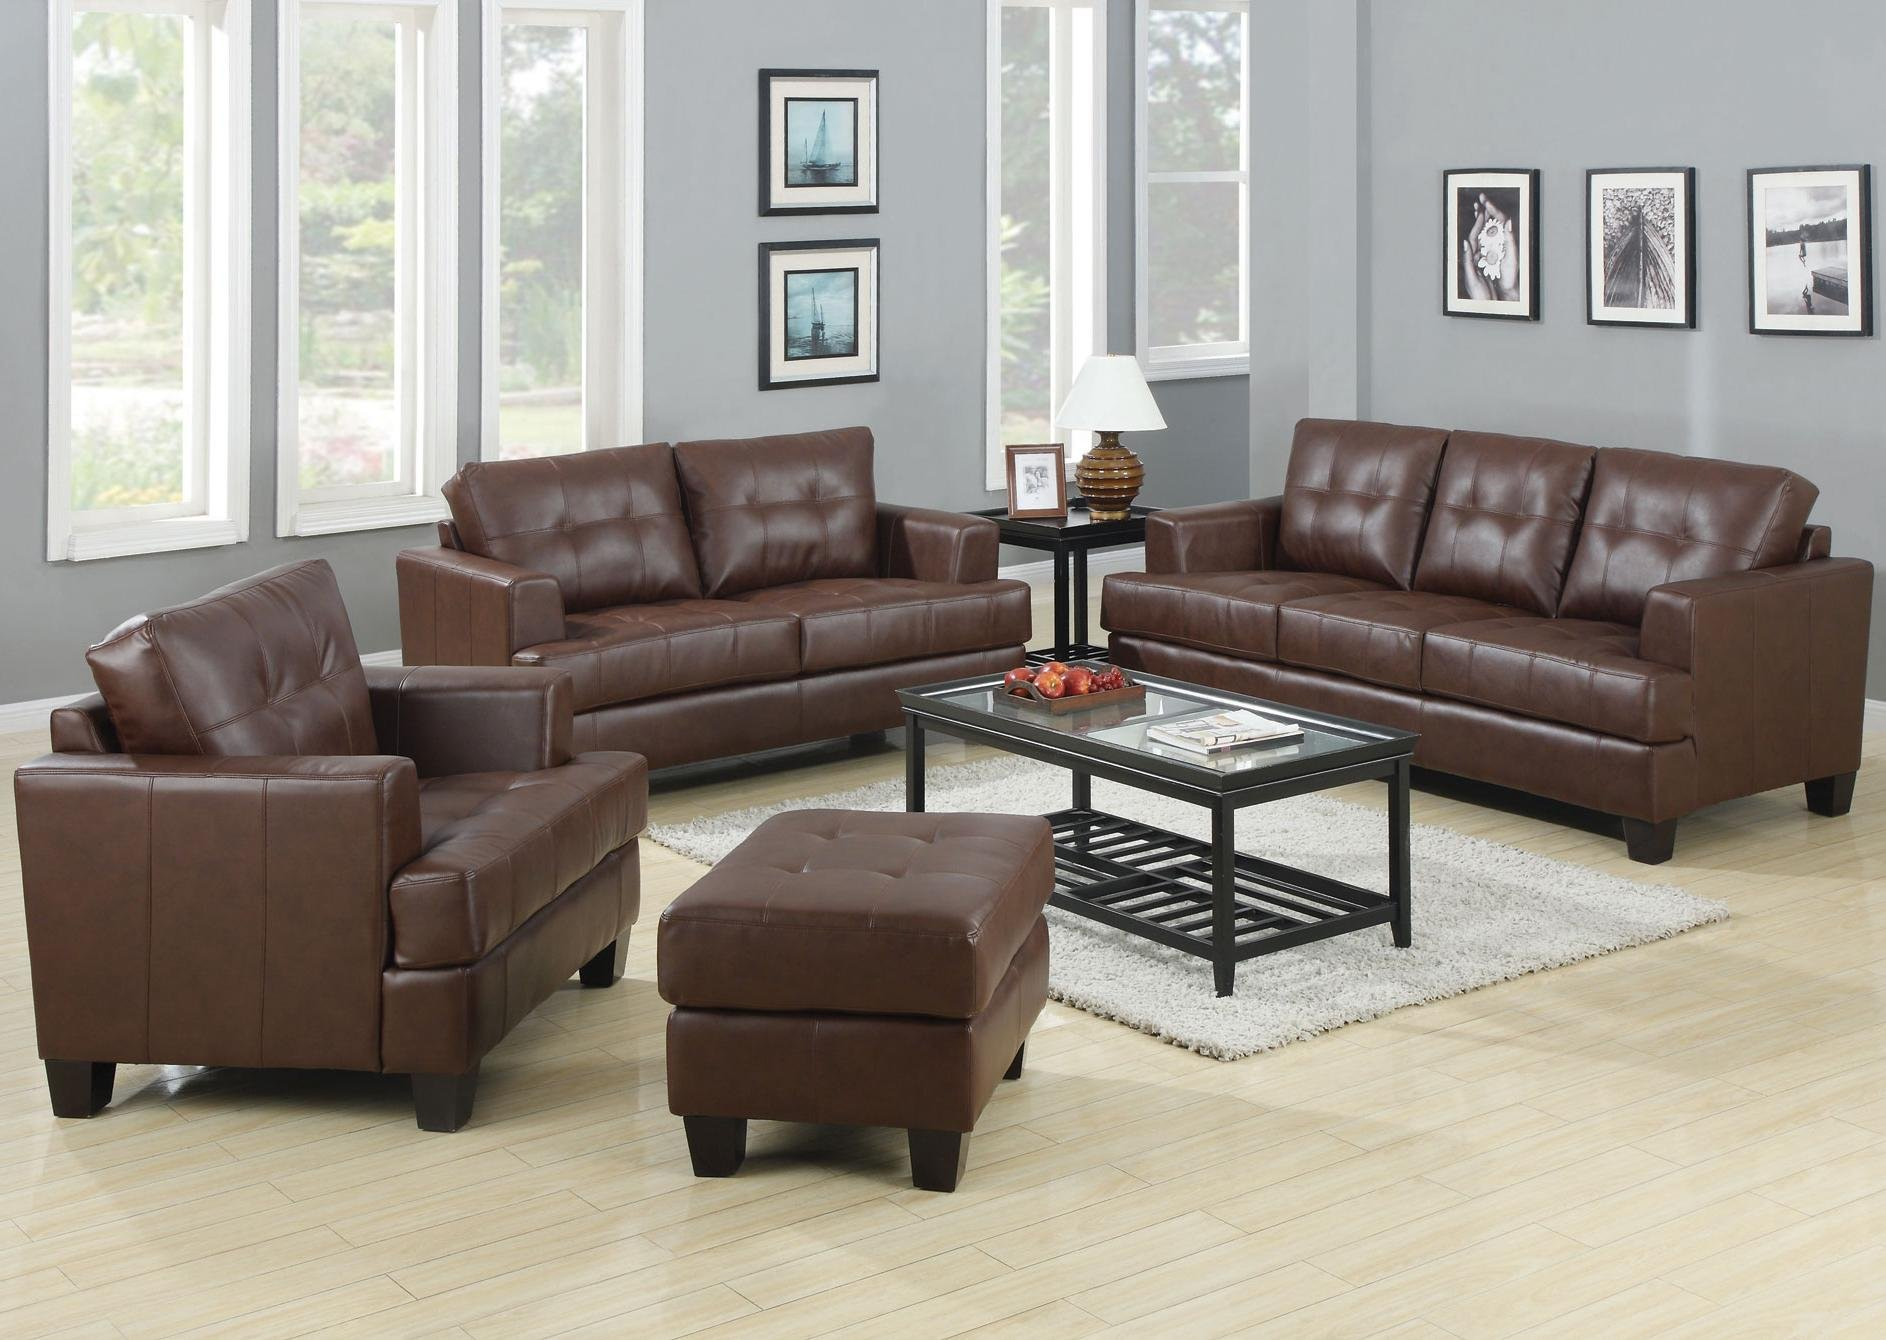 Coaster Home Furnishings Samuel Living Room Set with Sofa , Love Seat , Chair , and Ottoman in Brown Premium Bonded Leather